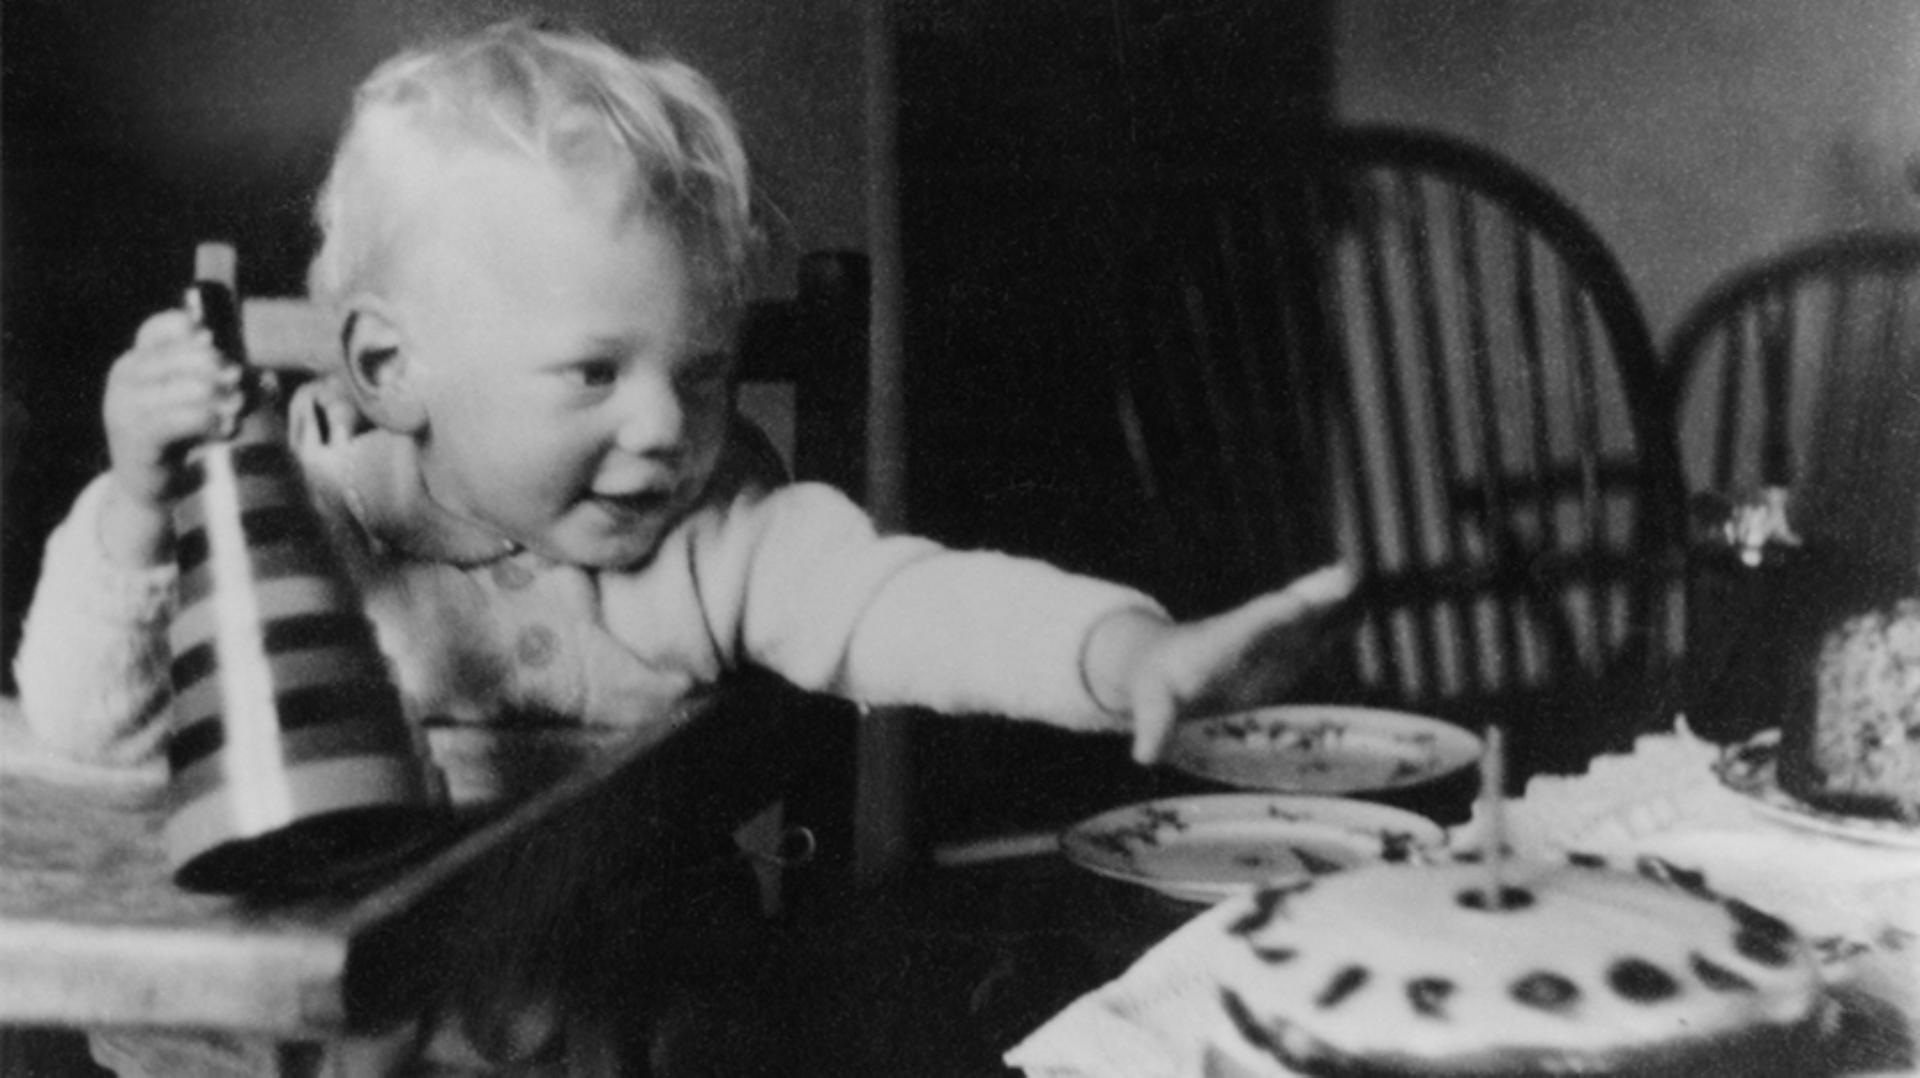 James Dyson on his first birthday reaching for his birthday cake